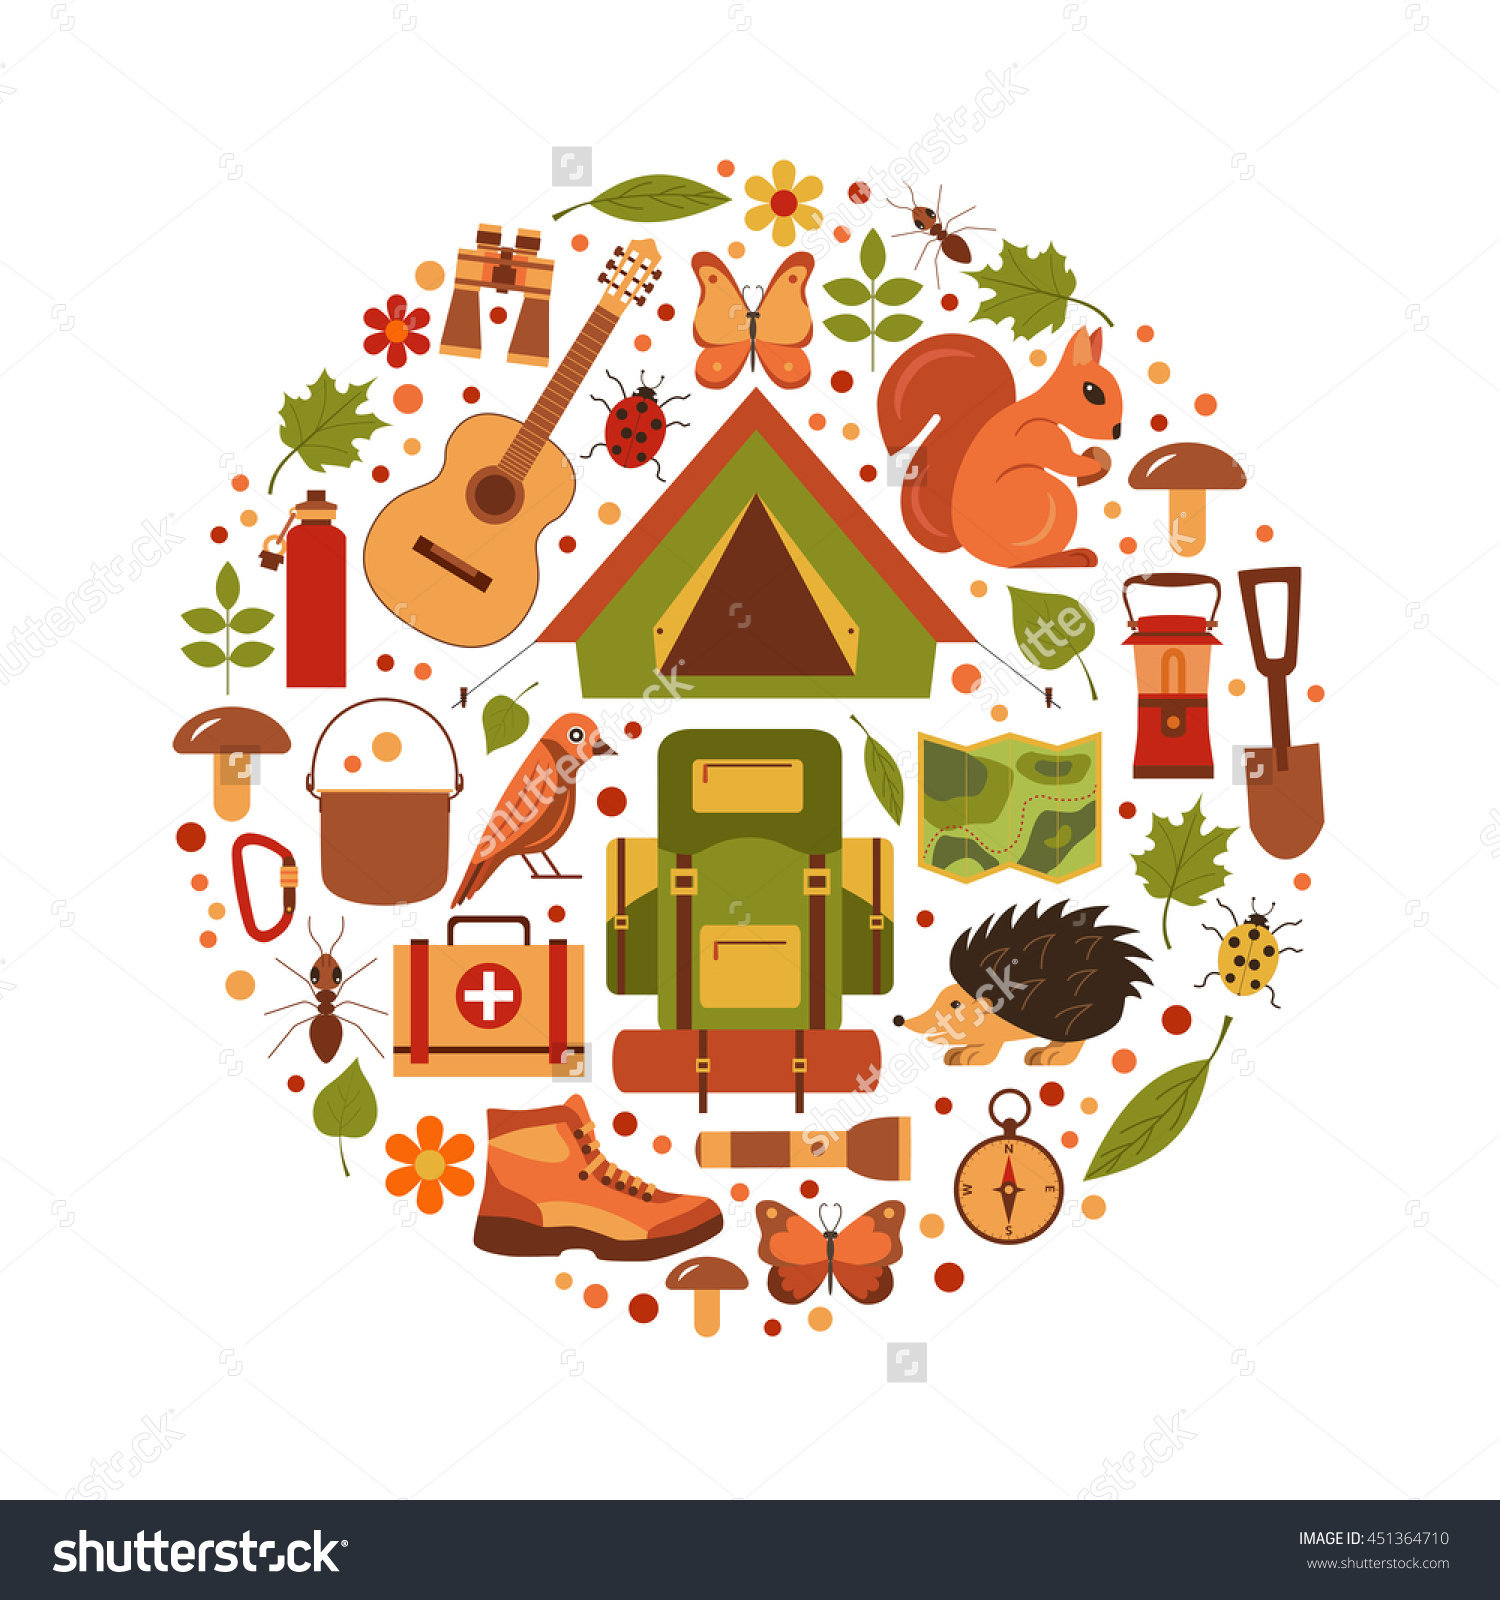 Eco Tourism clipart #18, Download drawings